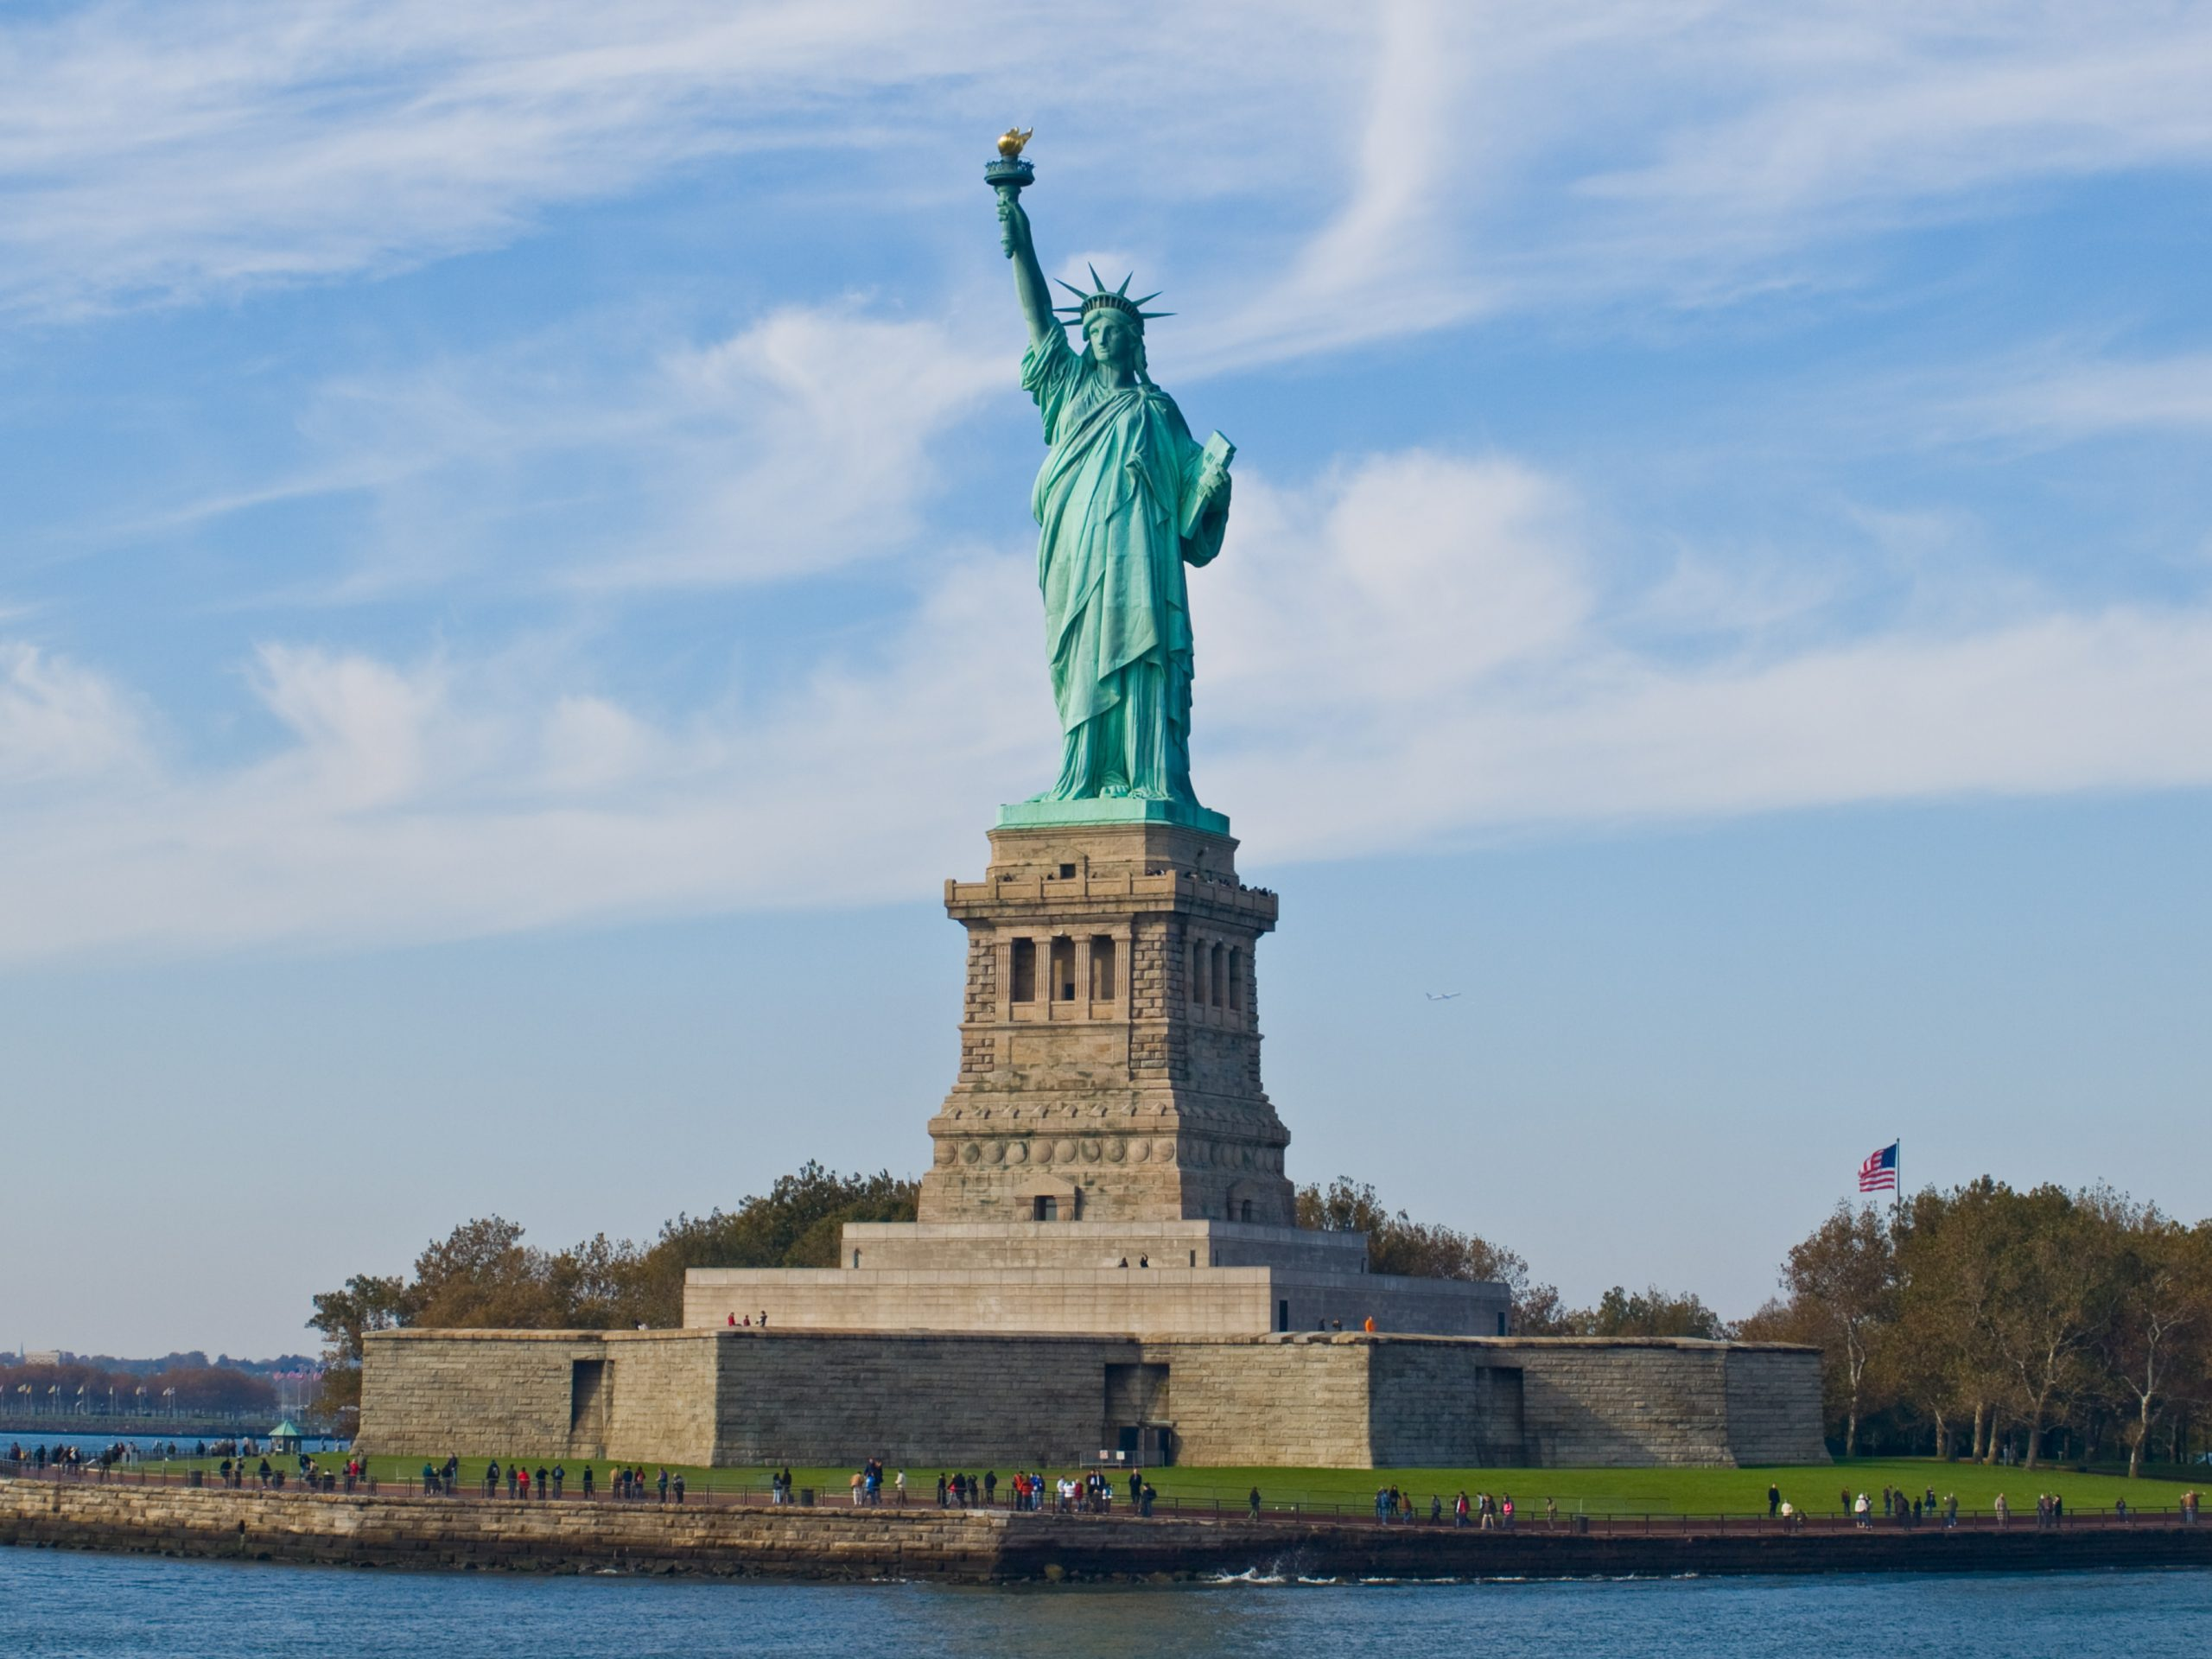 Statue of Liberty | Top Attractions in New York City That One Must Not Miss